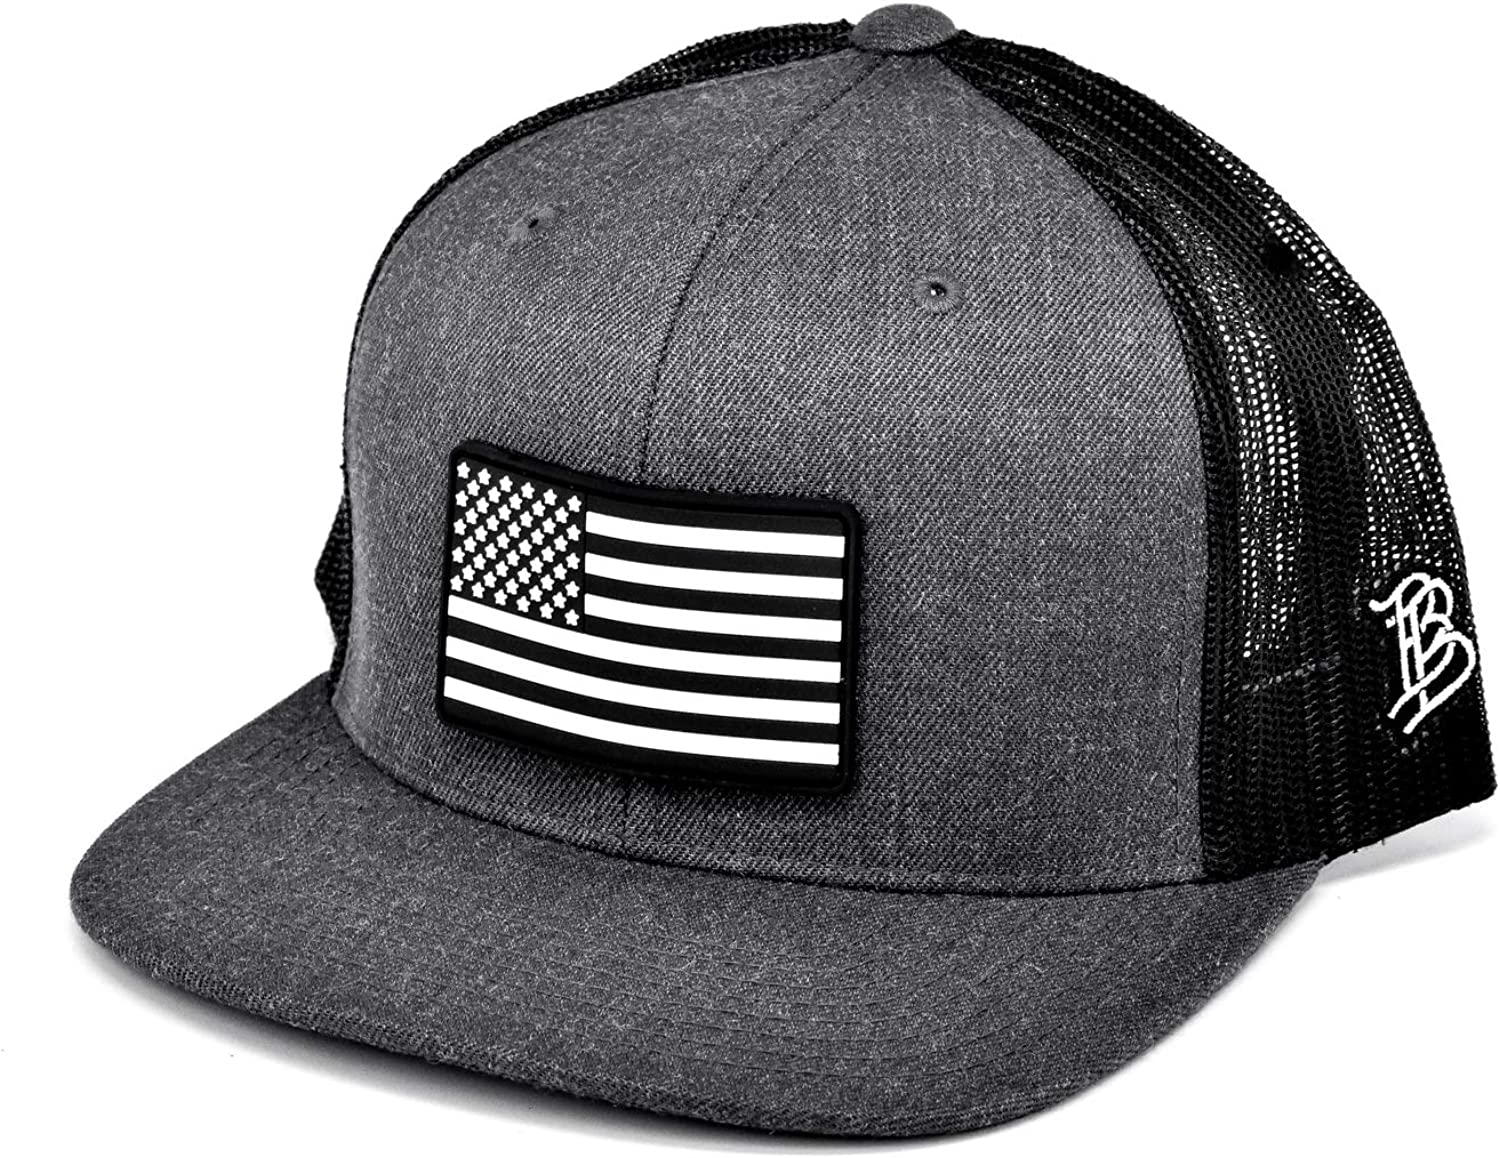 Branded Bills Vintage Rogue USA PVC Multiple Hat New popularity Patch Safety and trust Styles